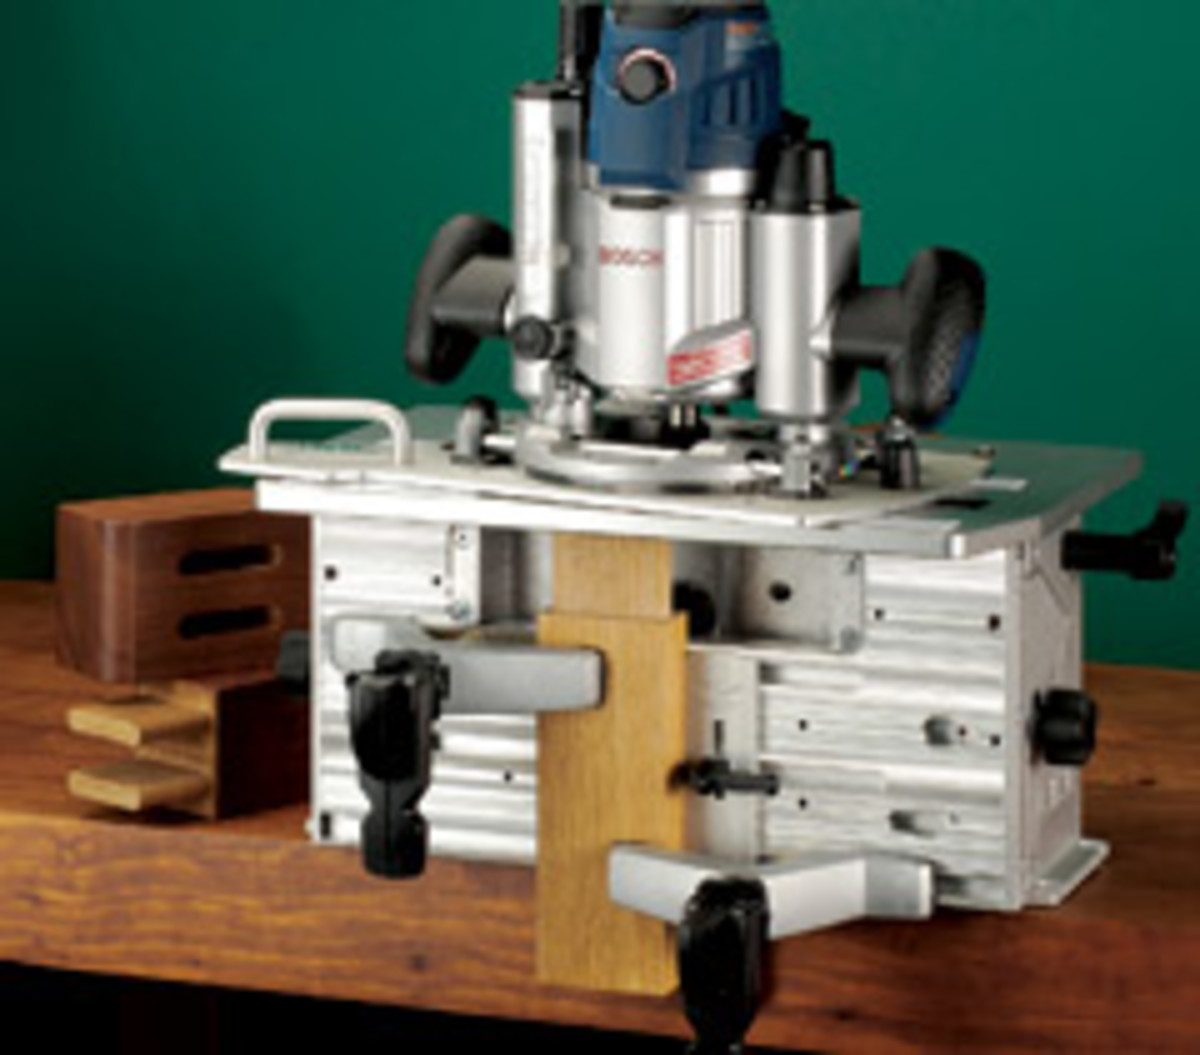 Leight Industries offers two mortise-and-tenon jigs, including the professional FMT Pro Model.